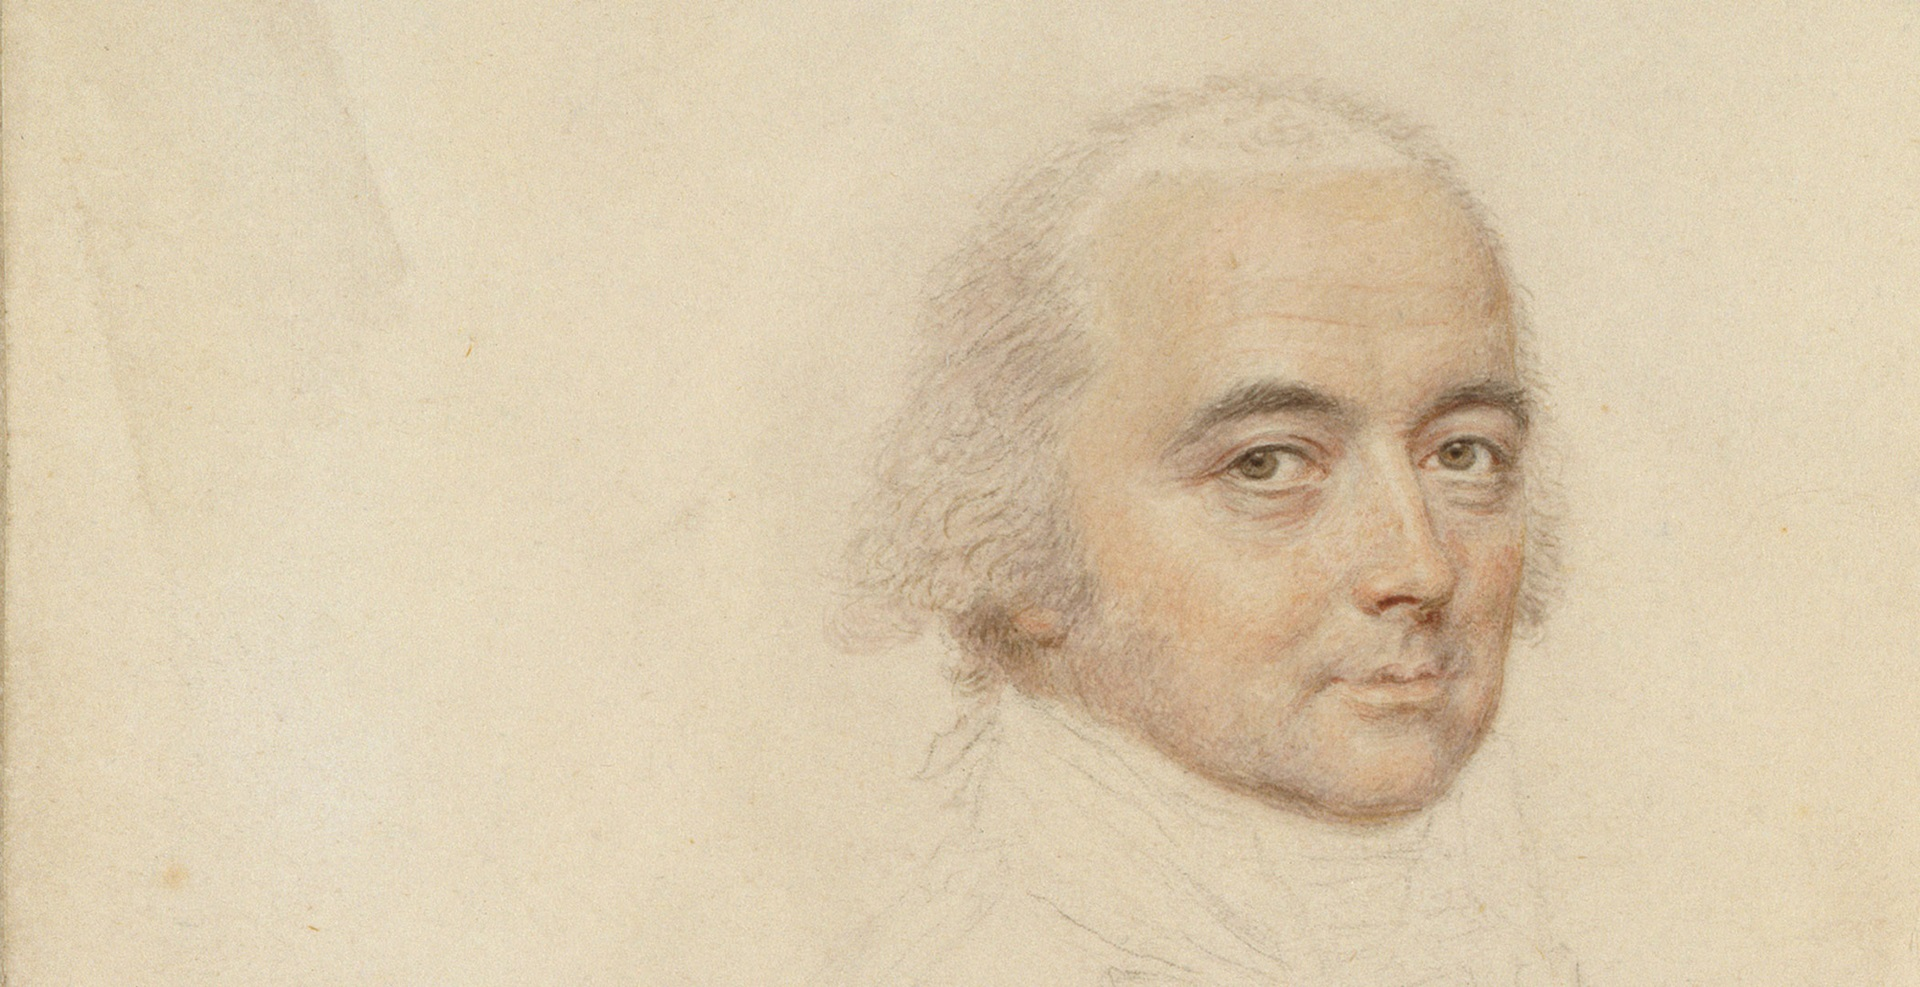 William Bligh, By John Smart, 1803, Pencil and watercolour, © National Portrait Gallery, London